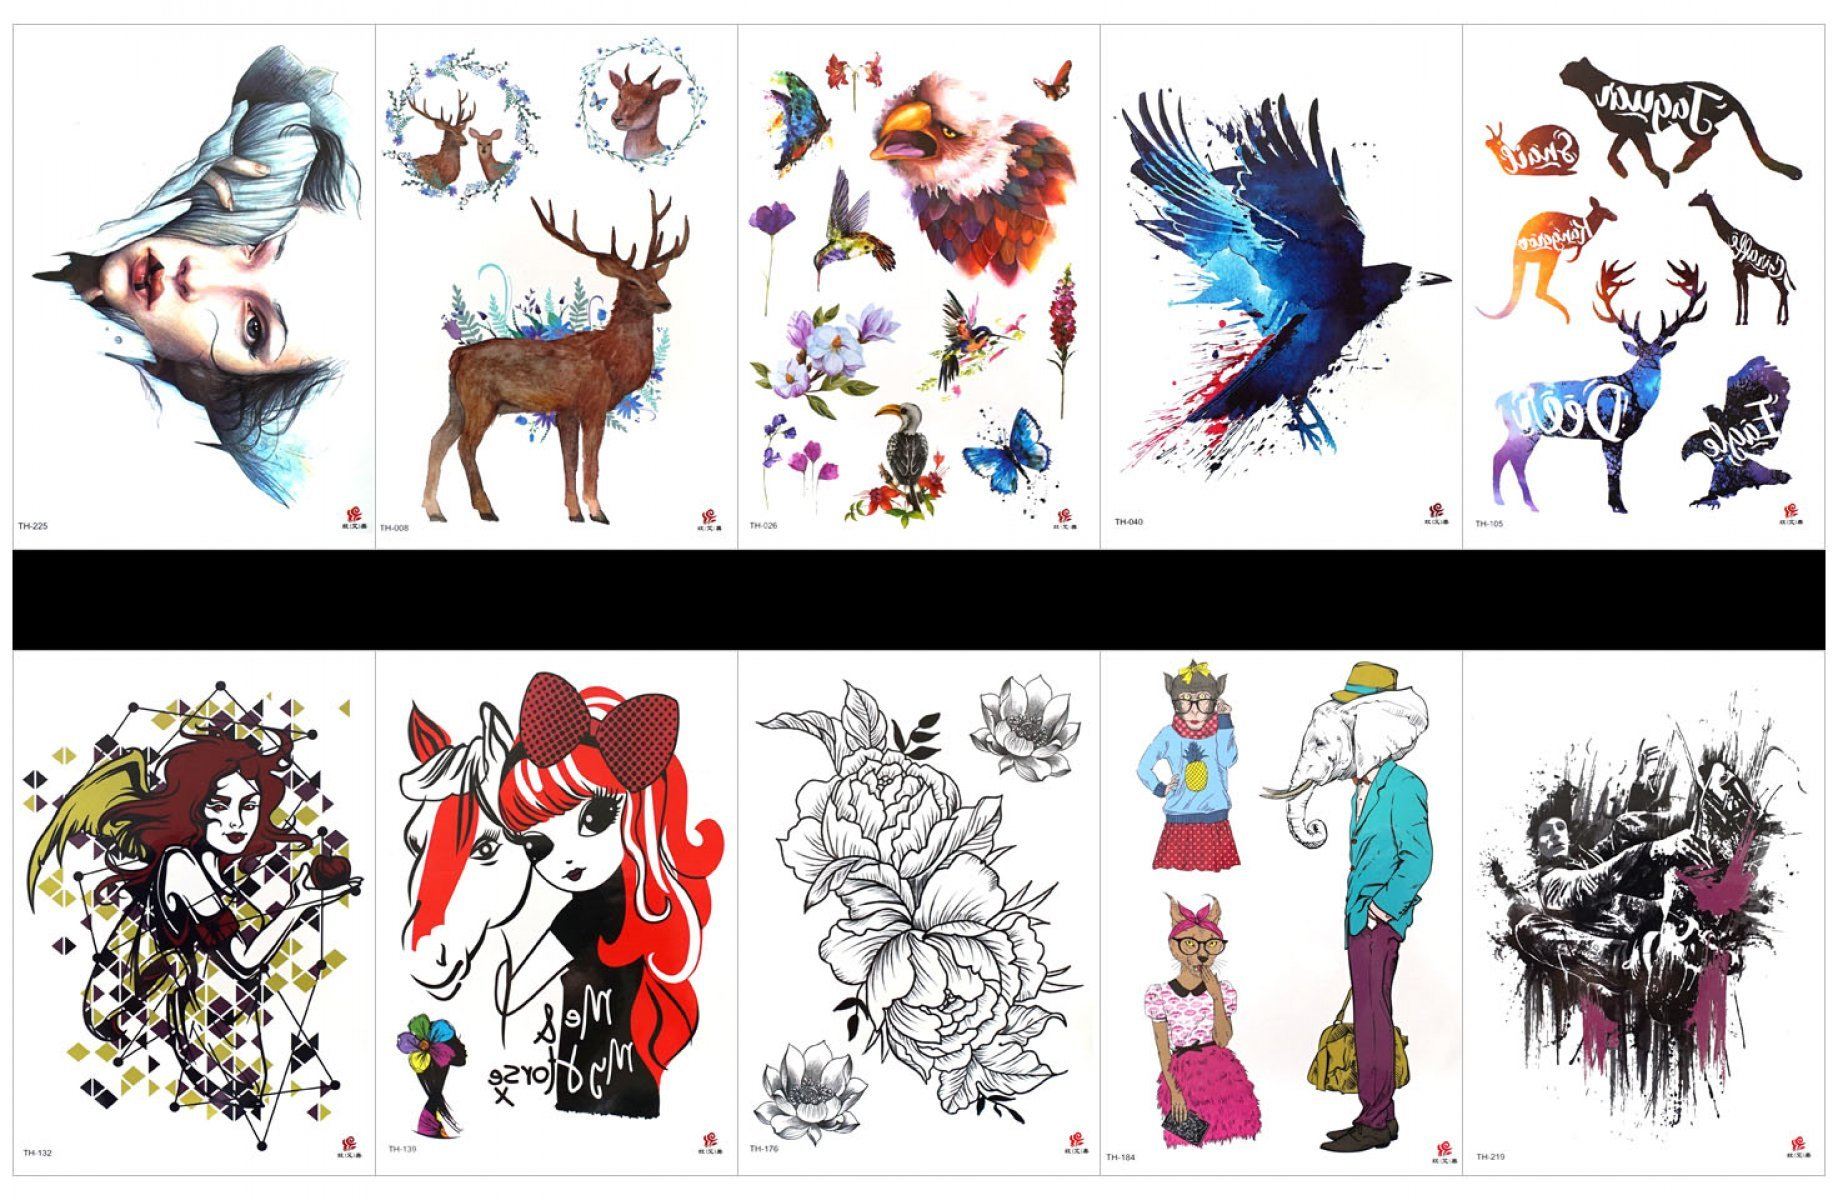 GGSELL GGSELL 10pcs tattoo eagle temporary tattoos in one packages,including beautiful lady,deer,flower with birds,eagle,deer,giraffe,kangaroo,flower,animal elephant,tiger,man,etc.